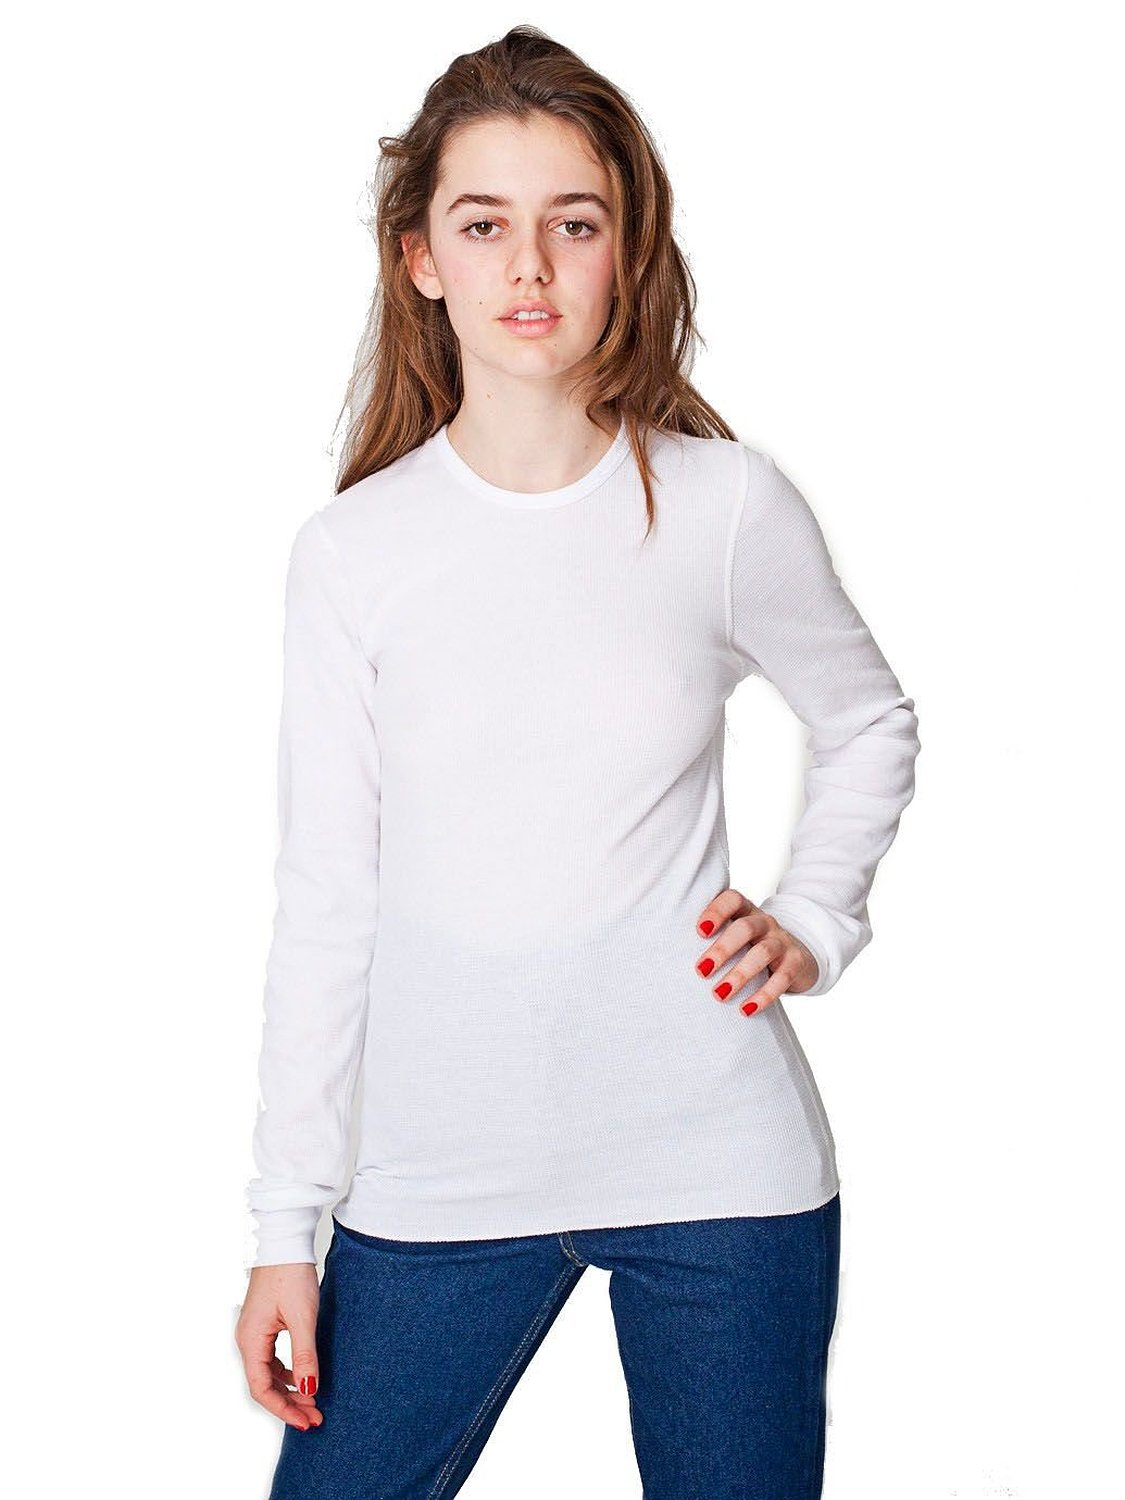 American Apparel Women 39 S Thermal Long Sleeve T